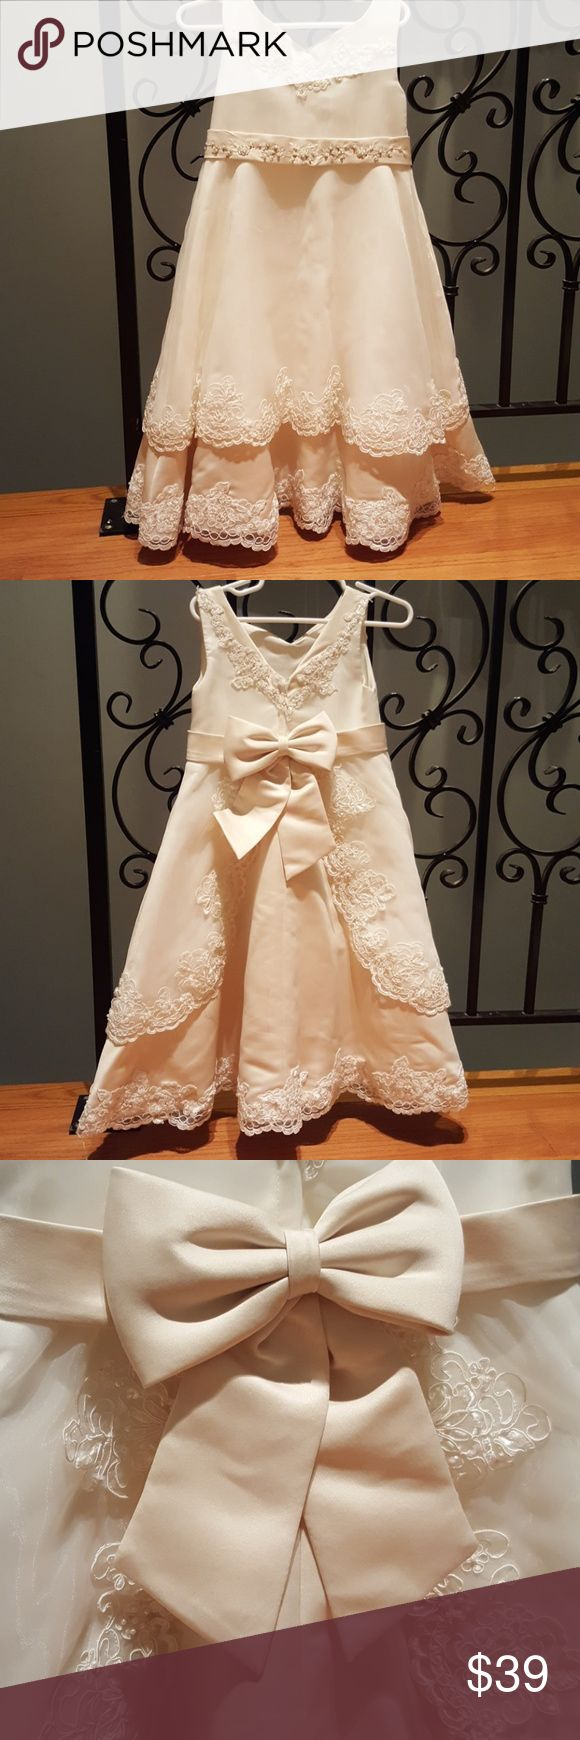 Flower girl special occasion dress Beautiful special occasion dress.  The top layer of the dress is off white and the bottom is beige.  The back has a cute bow.  The dress has a very tiny stain that is only visible if you stare at it (see the last picture). Cinderella Dresses Formal